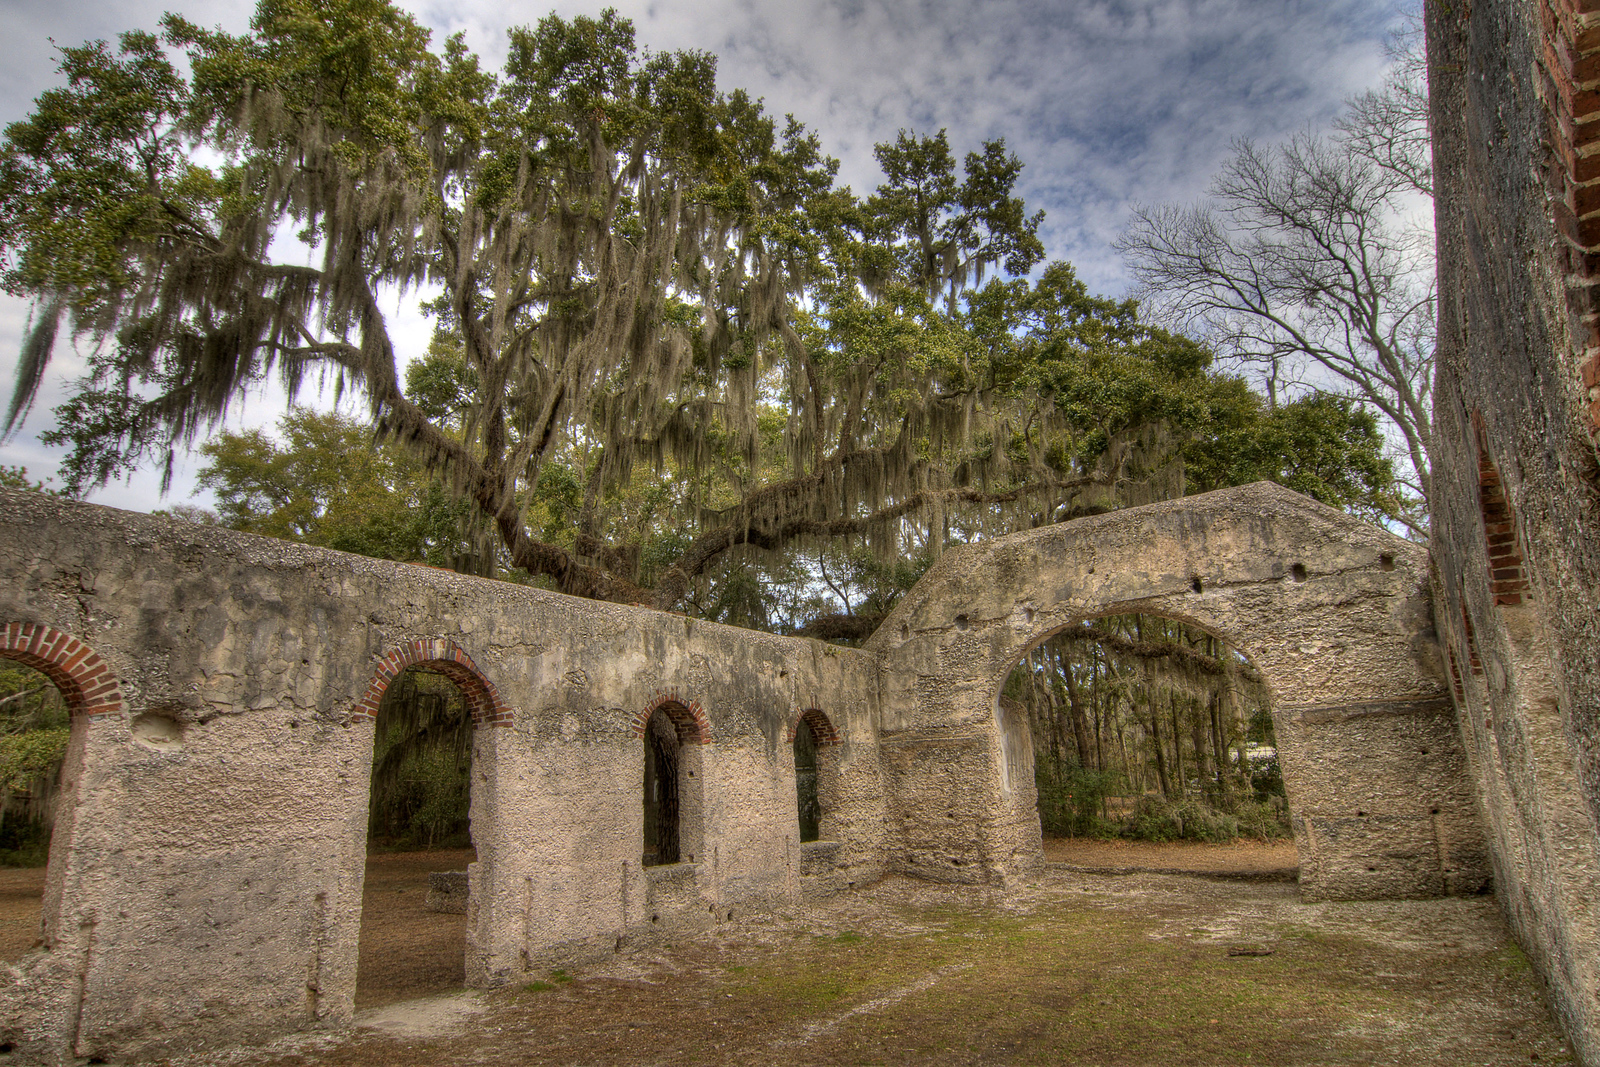 View through the absent roof at the Chapel of Ease Ruins in Saint Helena Island, SC on Sunday, February 22, 2015. Copyright 2015 Jason Barnette The chapel was building in the mid-1700's to serve the families of plantation owners on Saint Helena Island. In 1886 a forest fire destroyed the church, leaving only the walls and a single pillar standing. Today the grounds are maintained by Parish Church of St. Helena. The ruins are open to the public 24/7 for respectful exploration, and permits can be acquired for photo shoots and weddings.